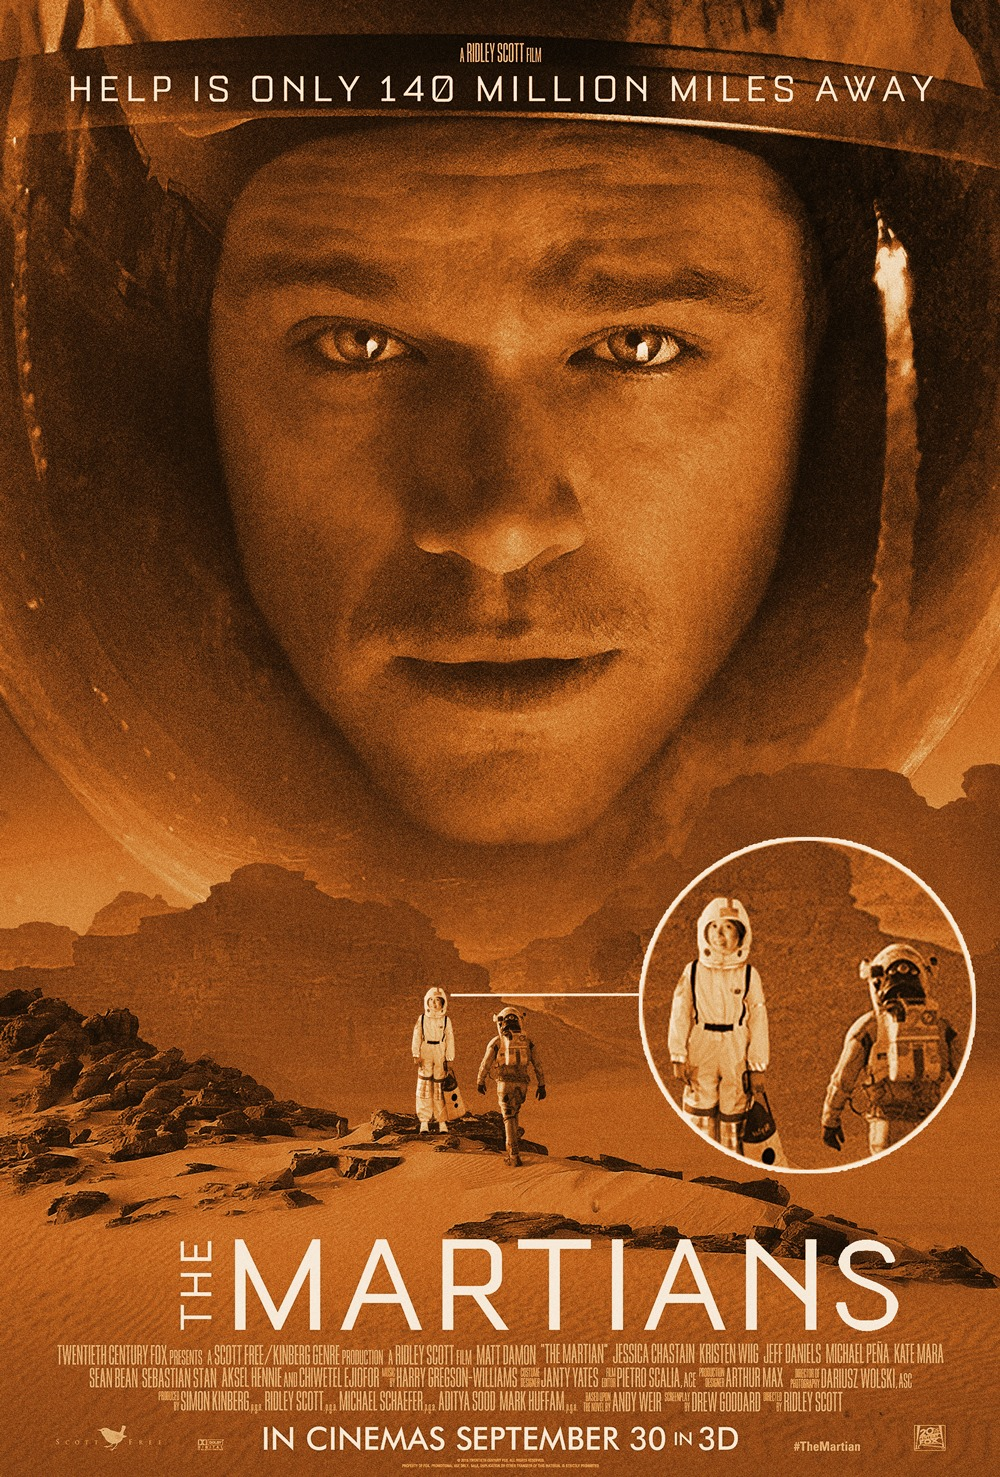 Mars is a lot of fun but Matt Damon and I are quite lonely up there though.